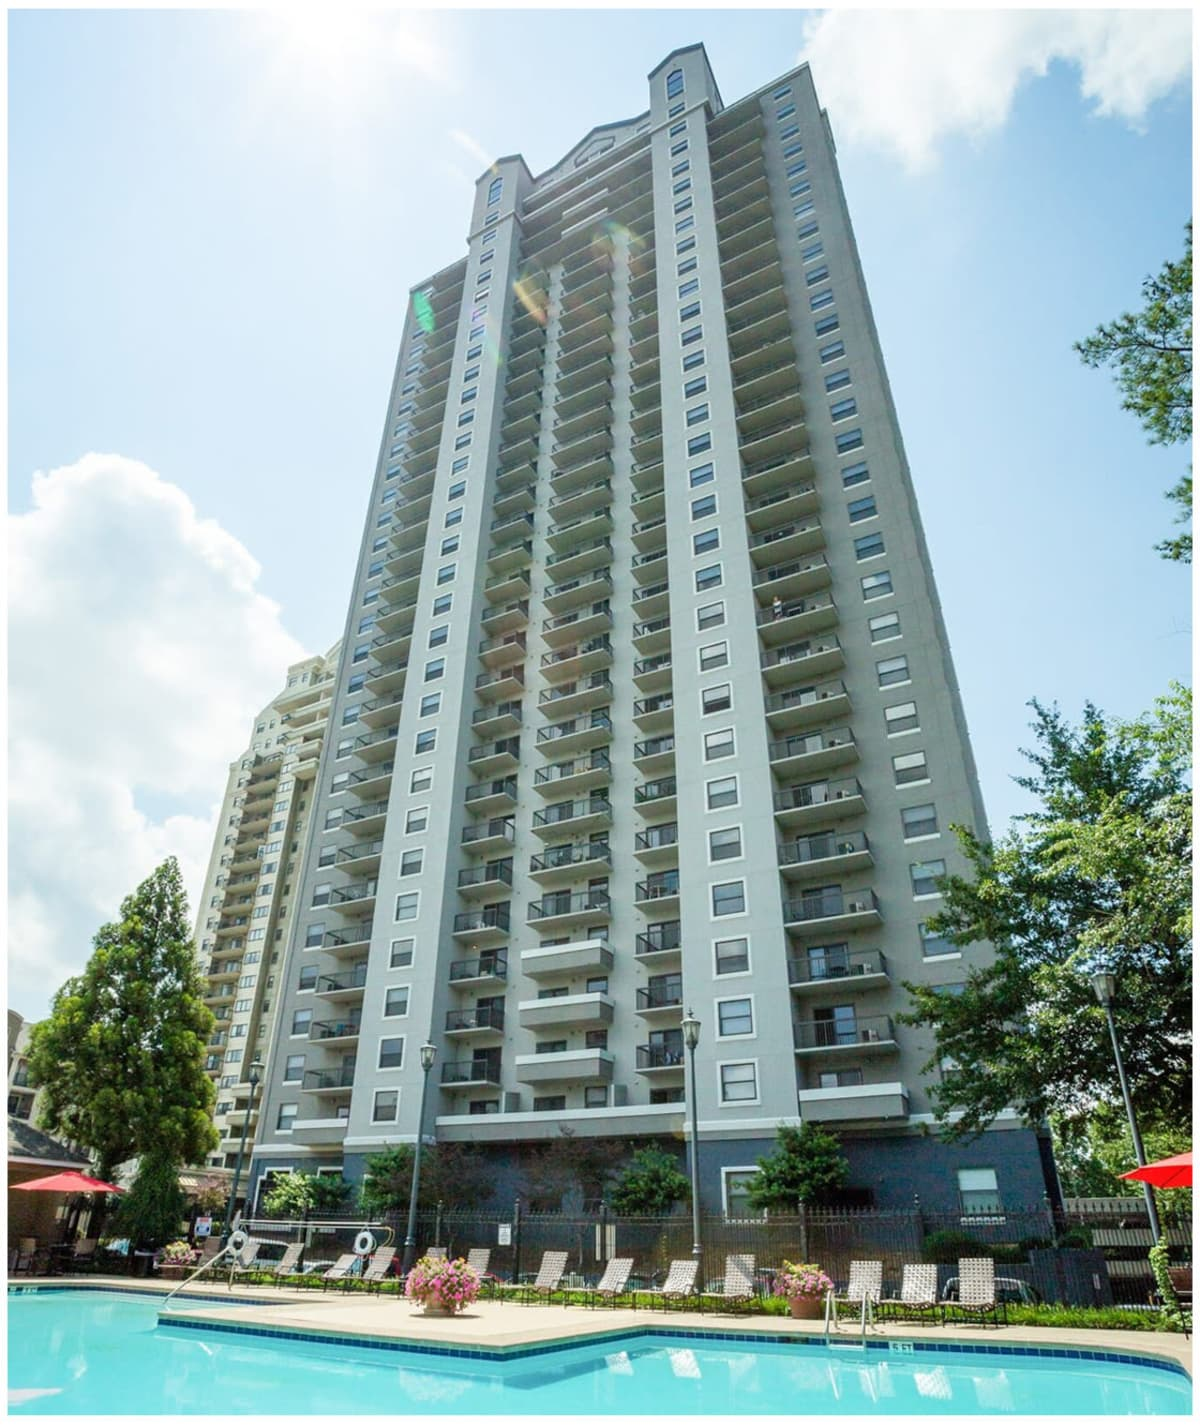 View our apartments at The Eva in Sandy Springs